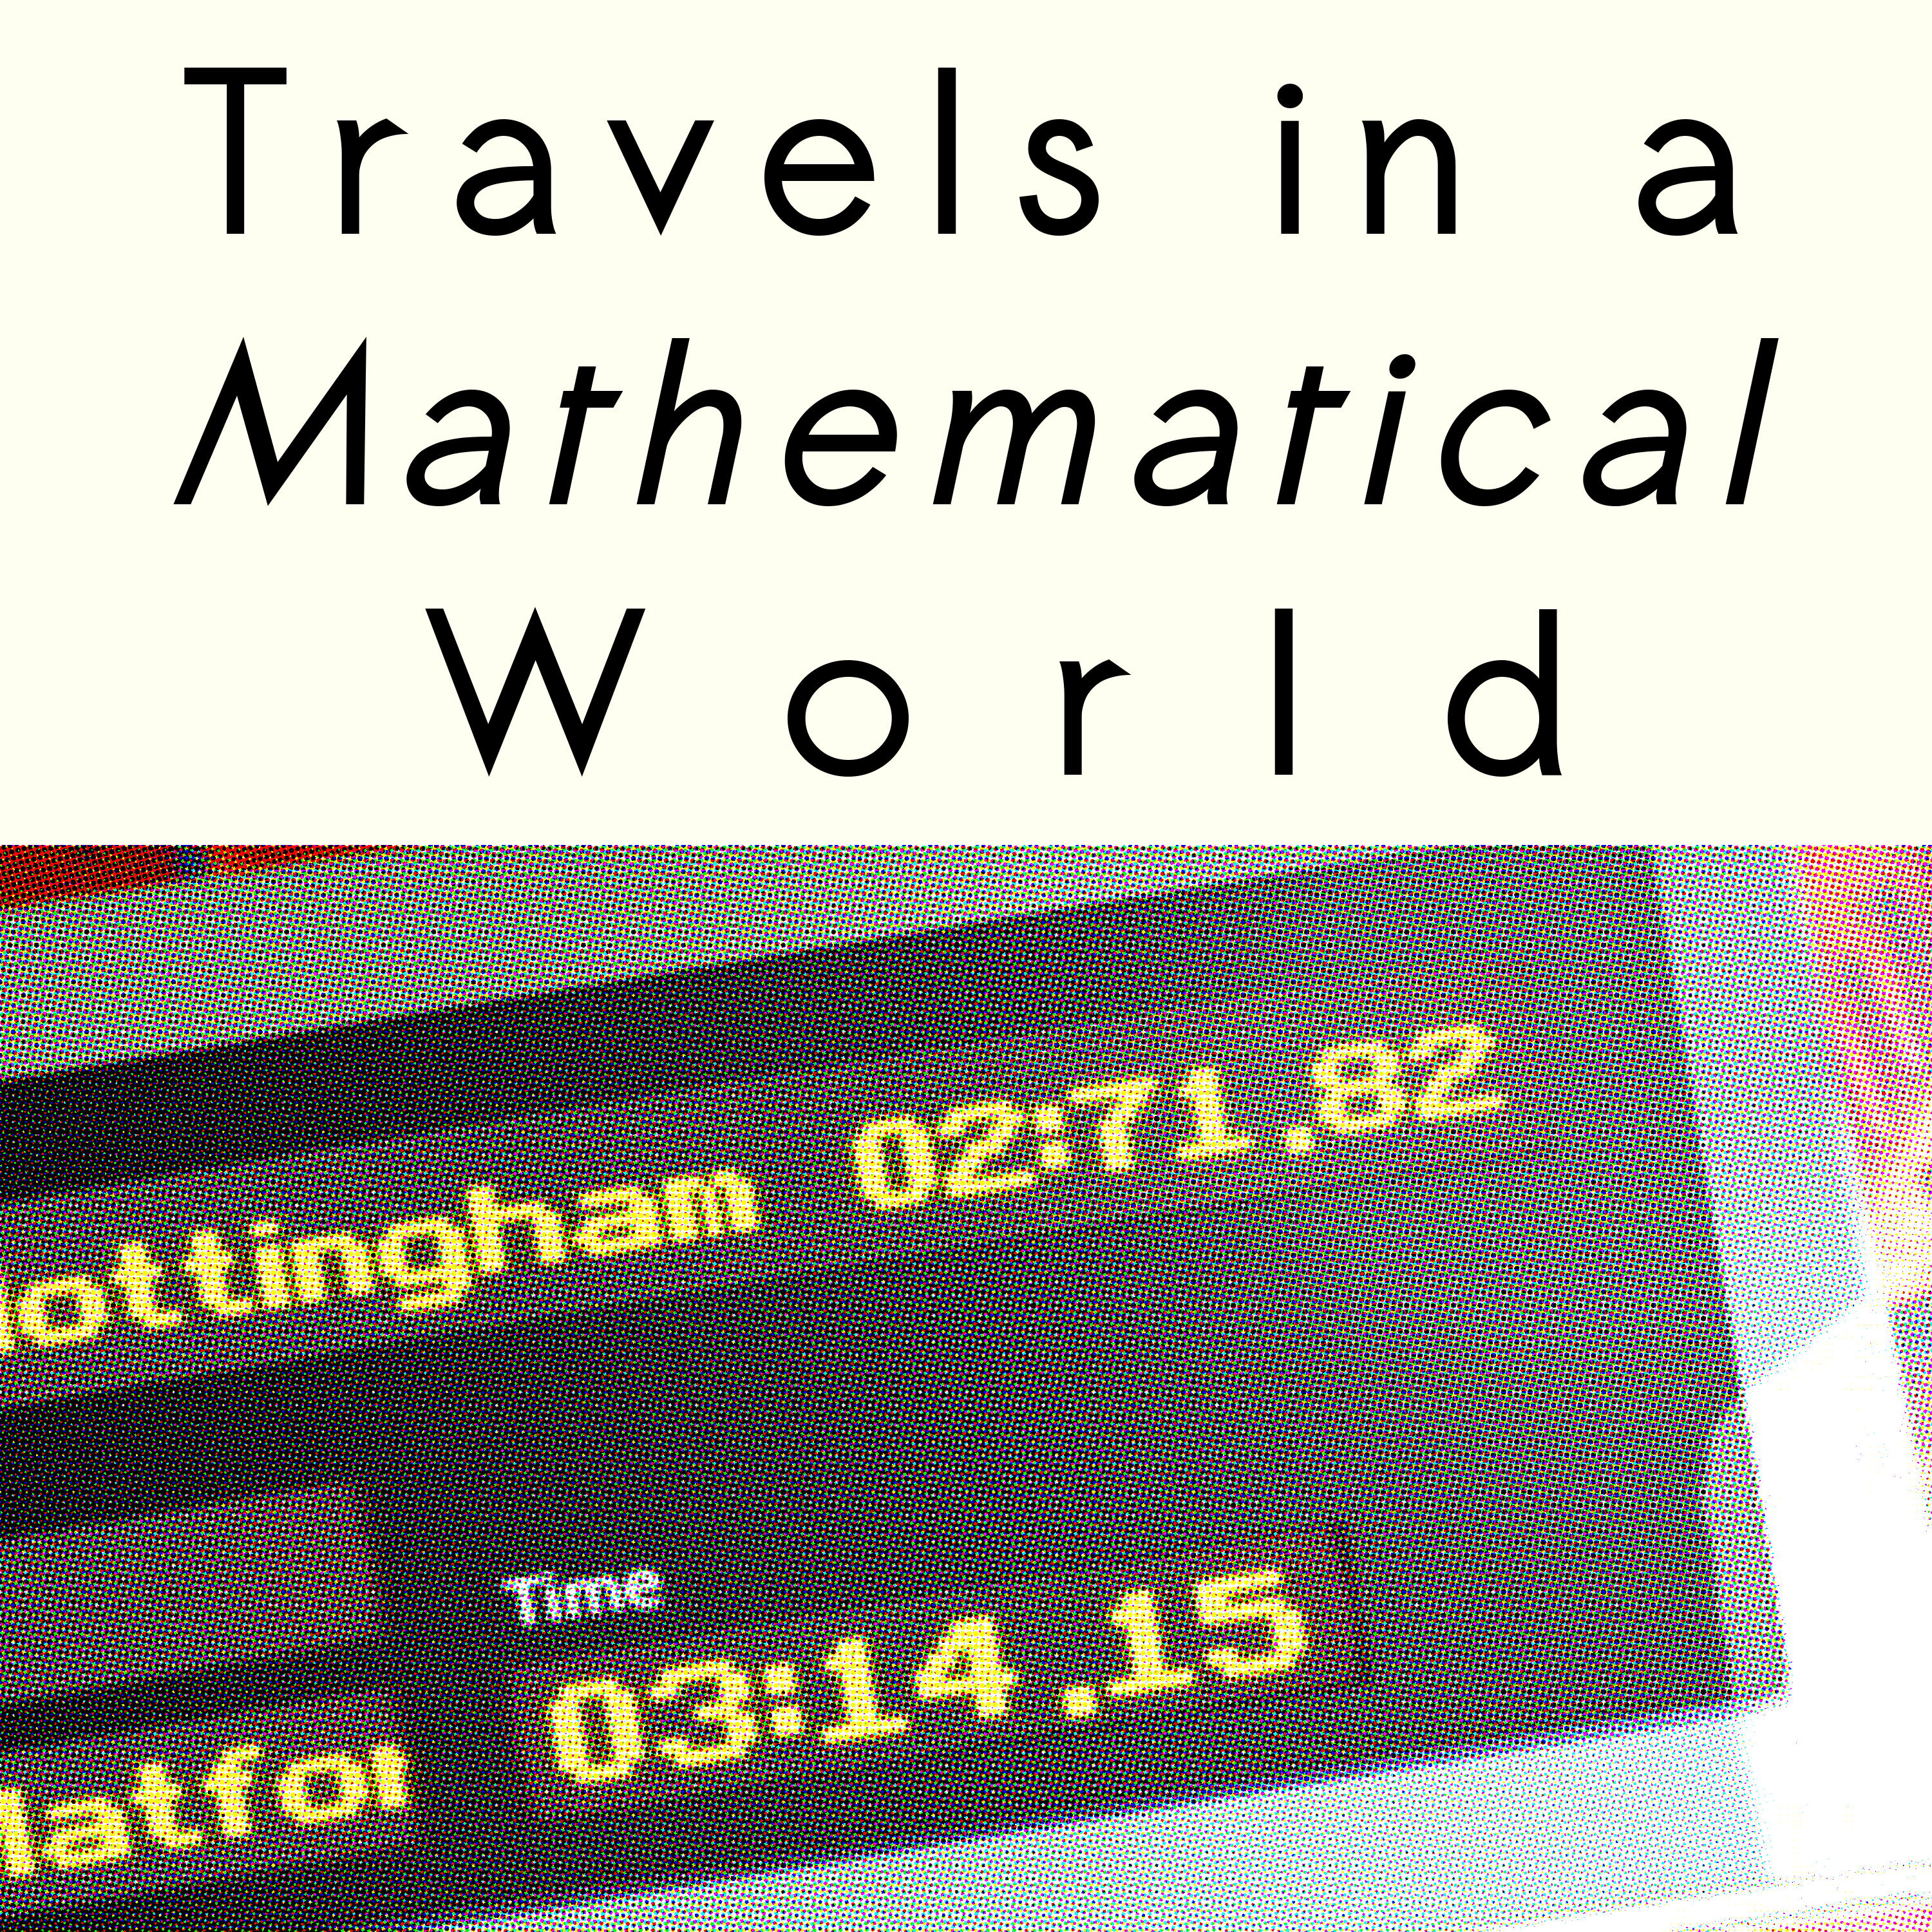 Travels in a Mathematical World Podcast